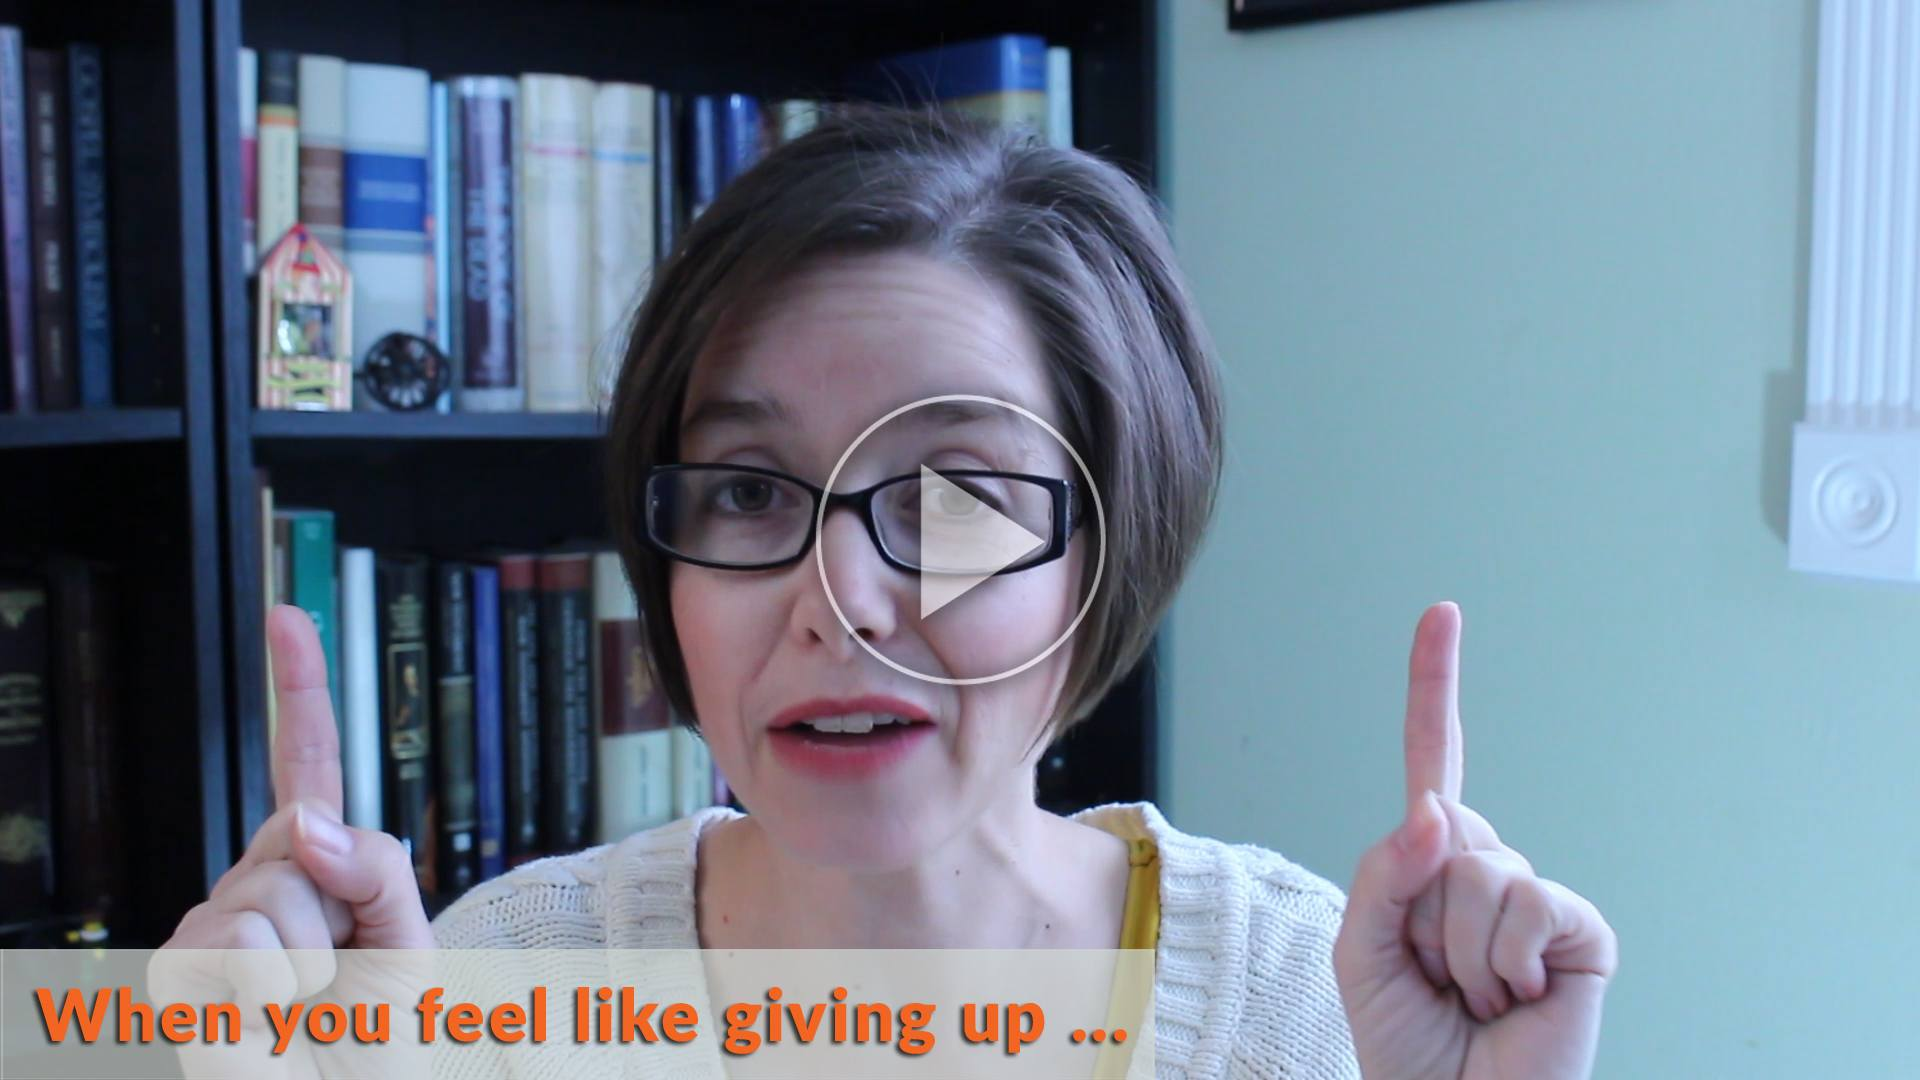 Simple homeschool phrase to use when you feel like giving up